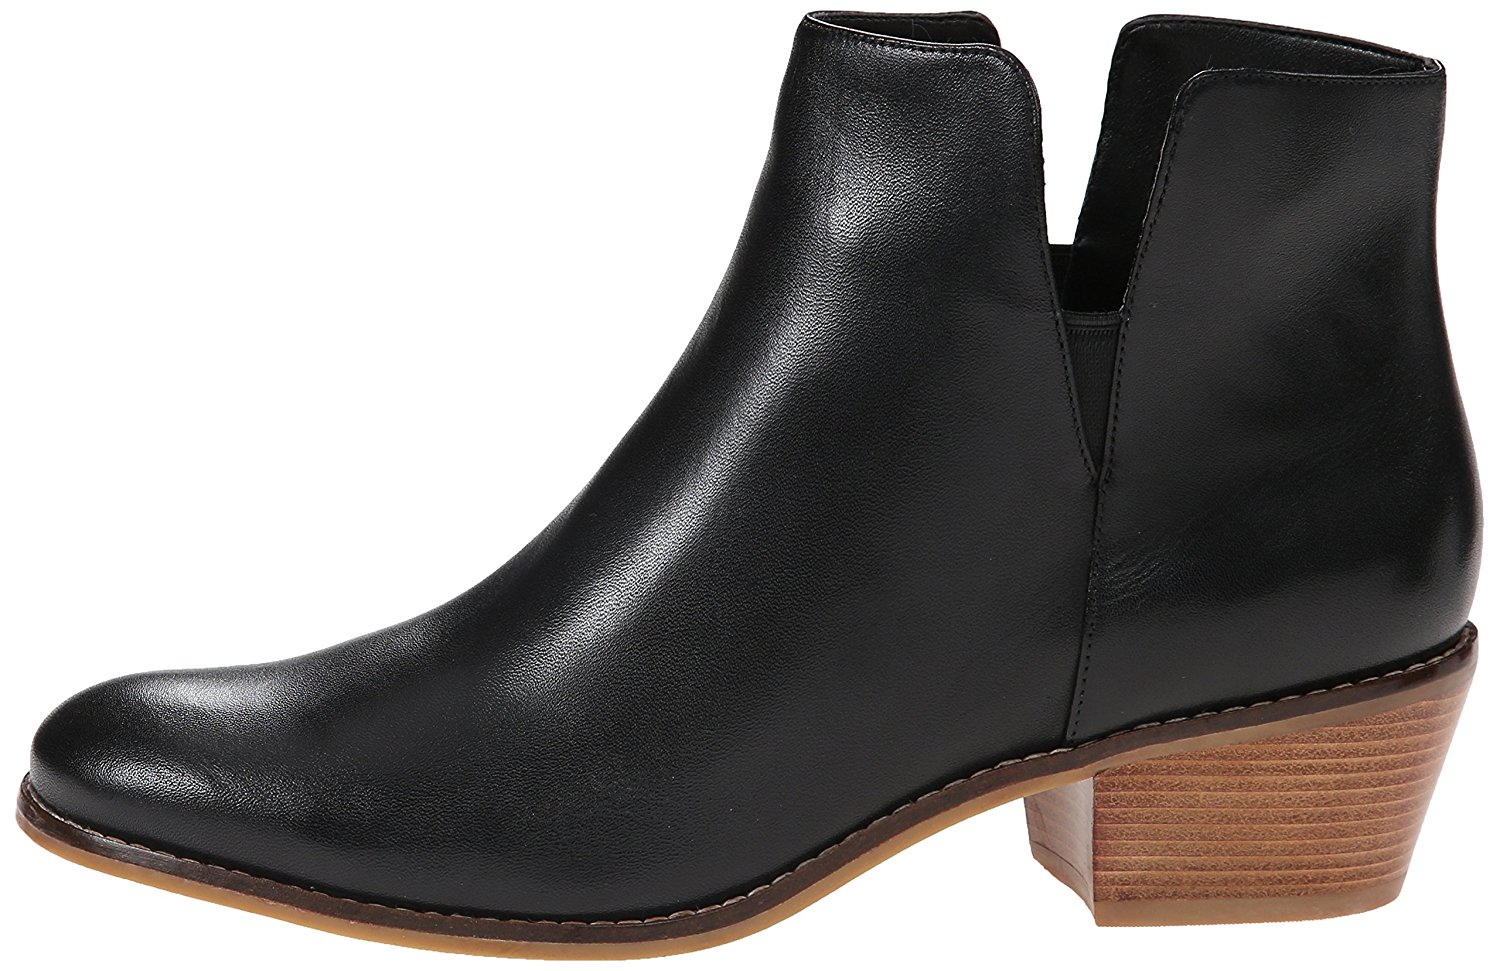 7cf121b7162 Cole Haan Womens abbot bootie Leather Almond Toe Ankle Fashion, Black, Size  10.0